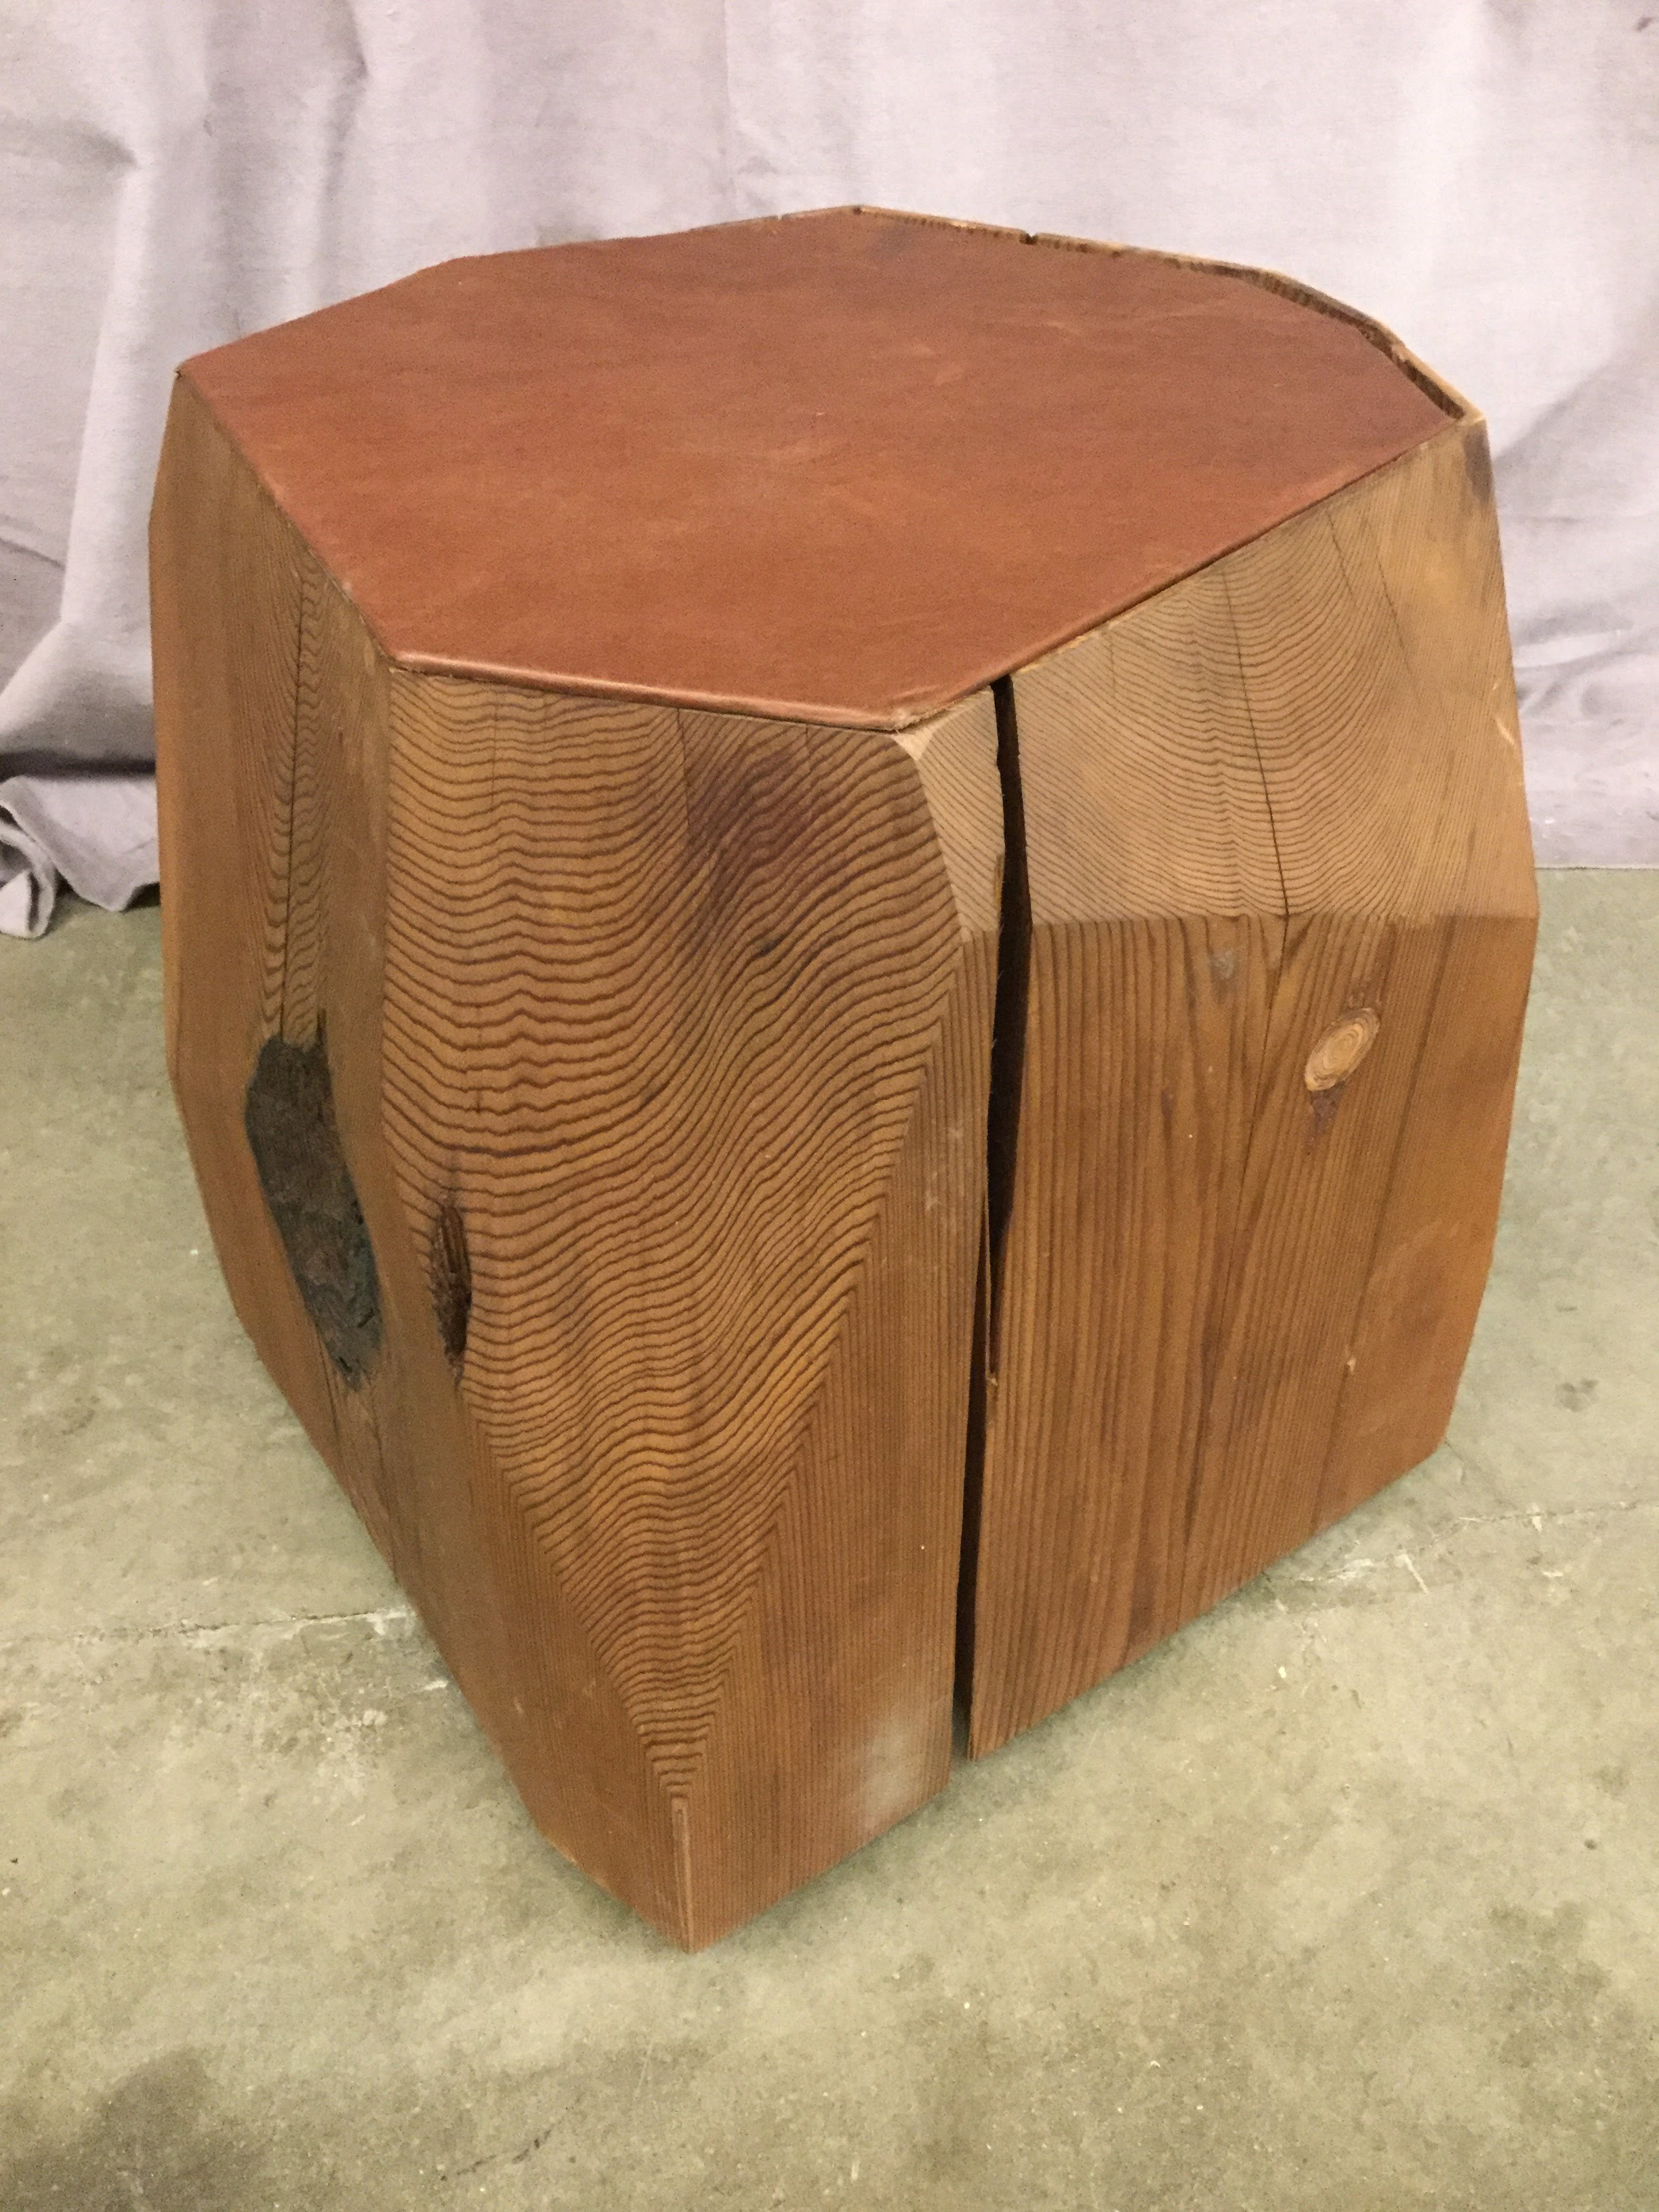 accent table stool faceted red cedar log inset leather wood upholstered steel top bedroom design inch deep console living room tables entryway cabinet front entry furniture target